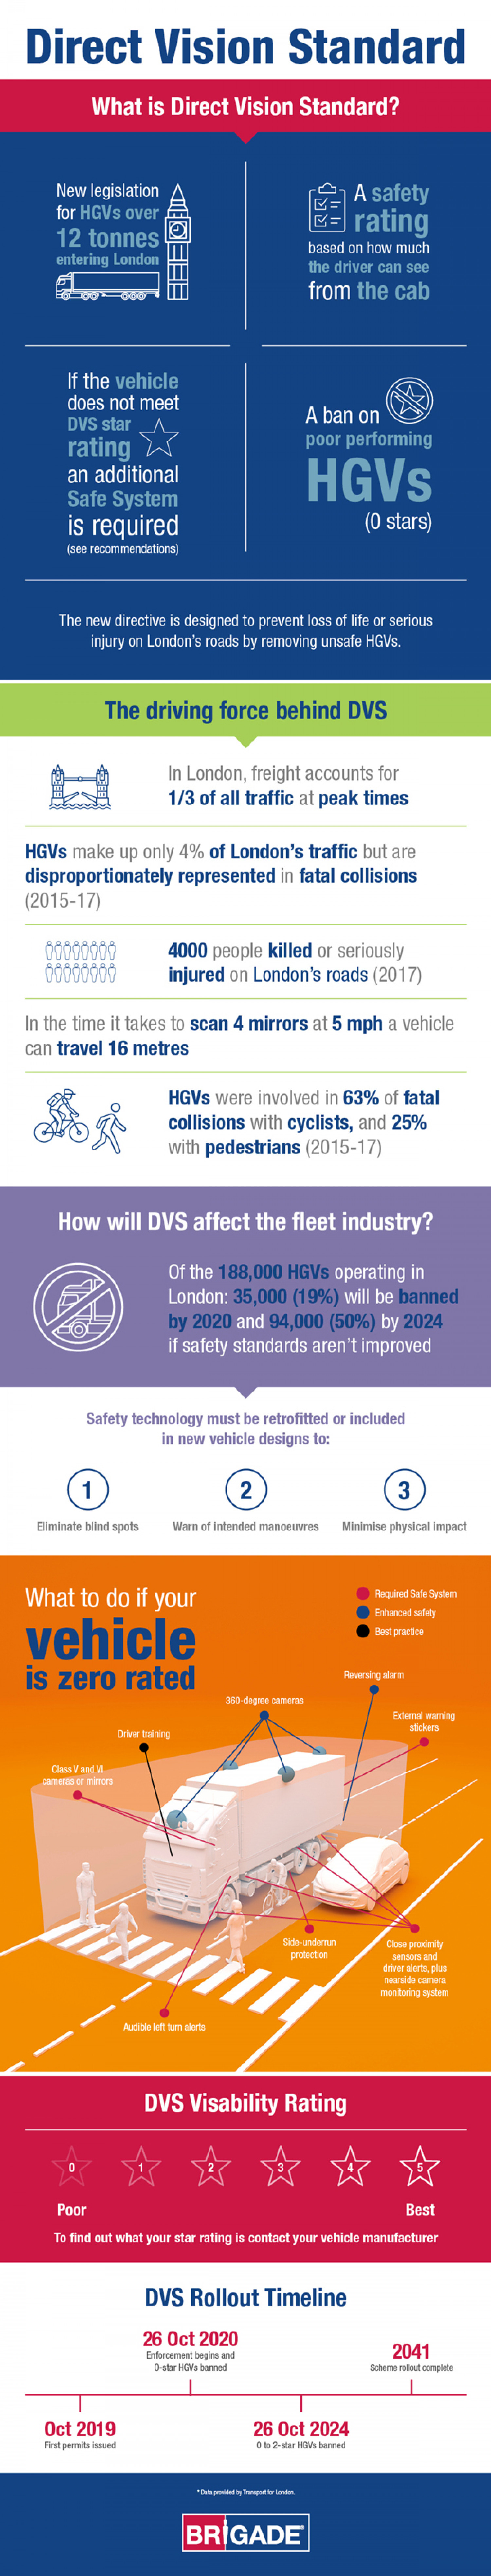 Infographic on London's new Direct Vision Standard Infographic